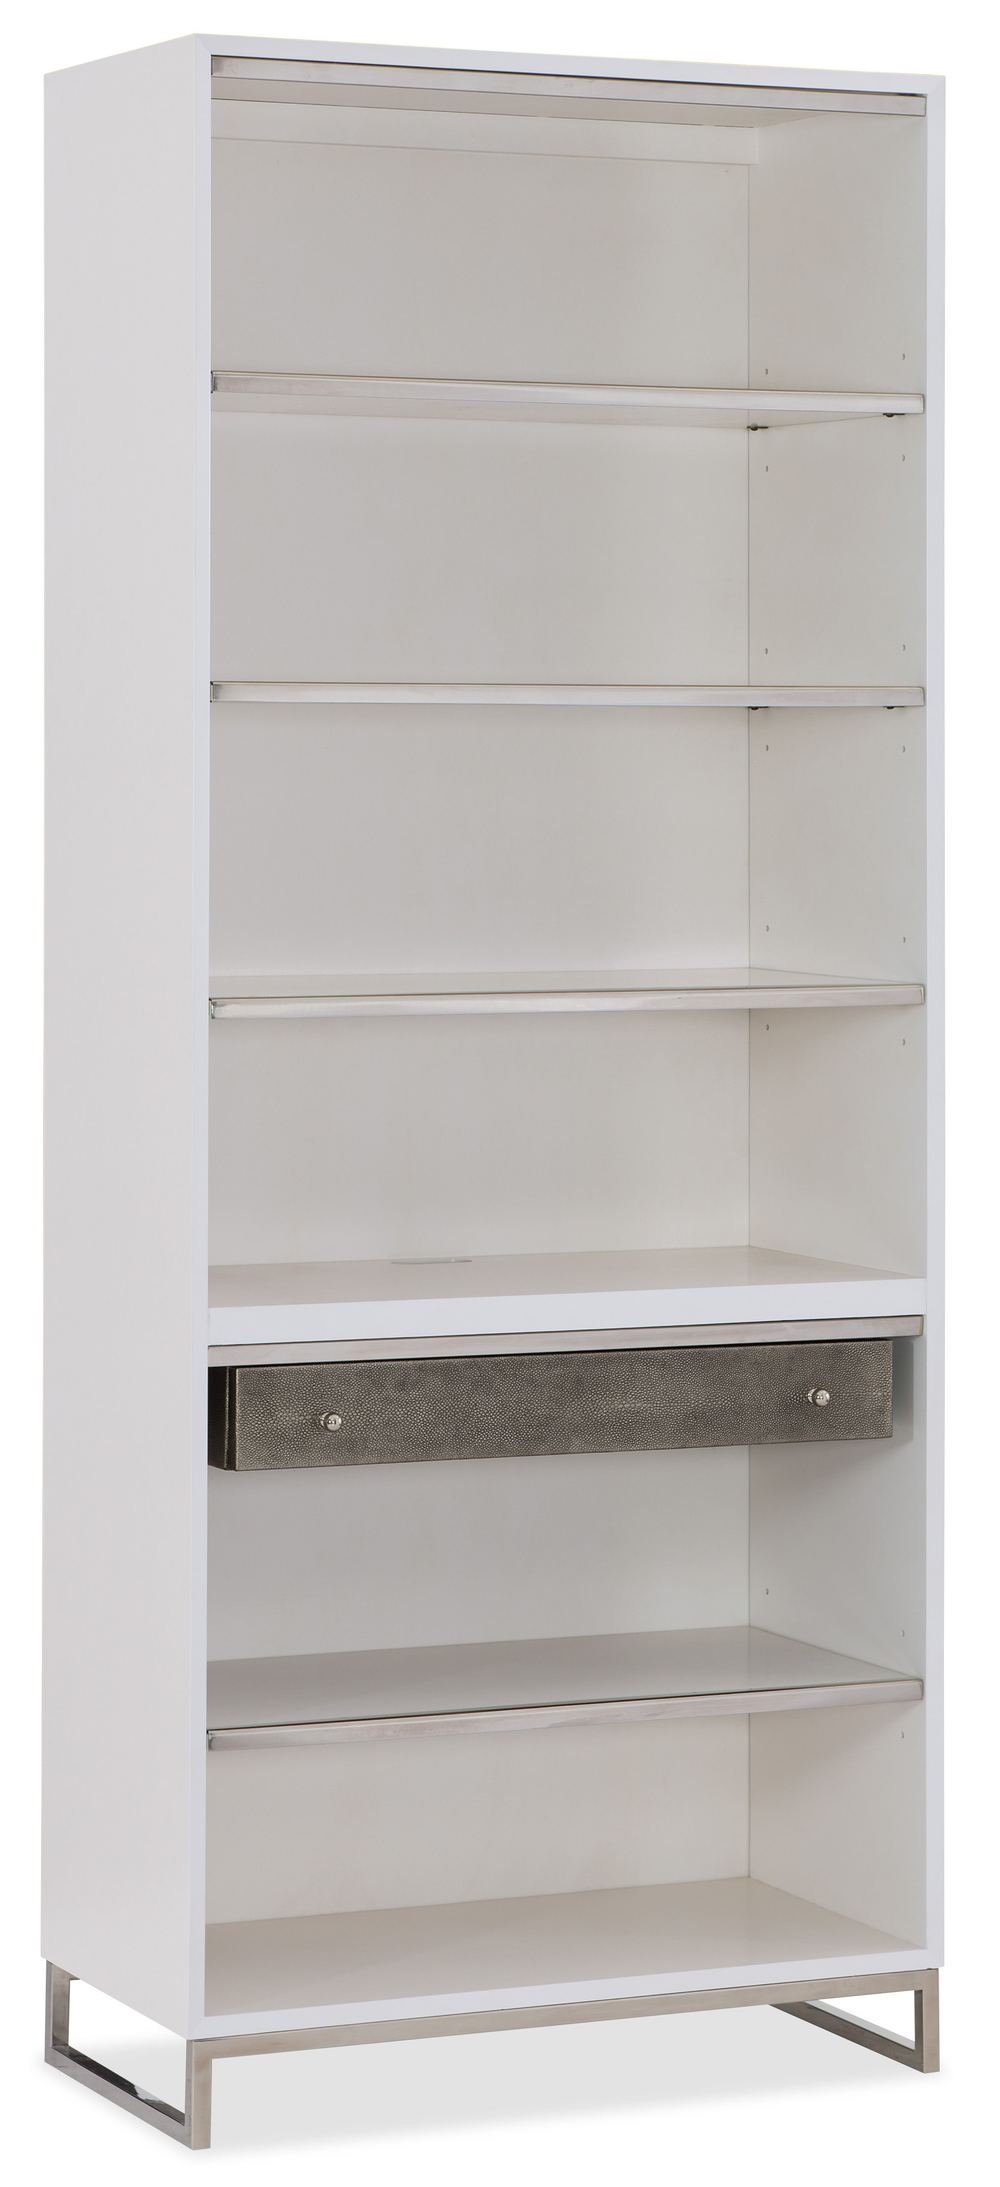 Hooker Furniture - Sophisticated Contemporary Bookcase